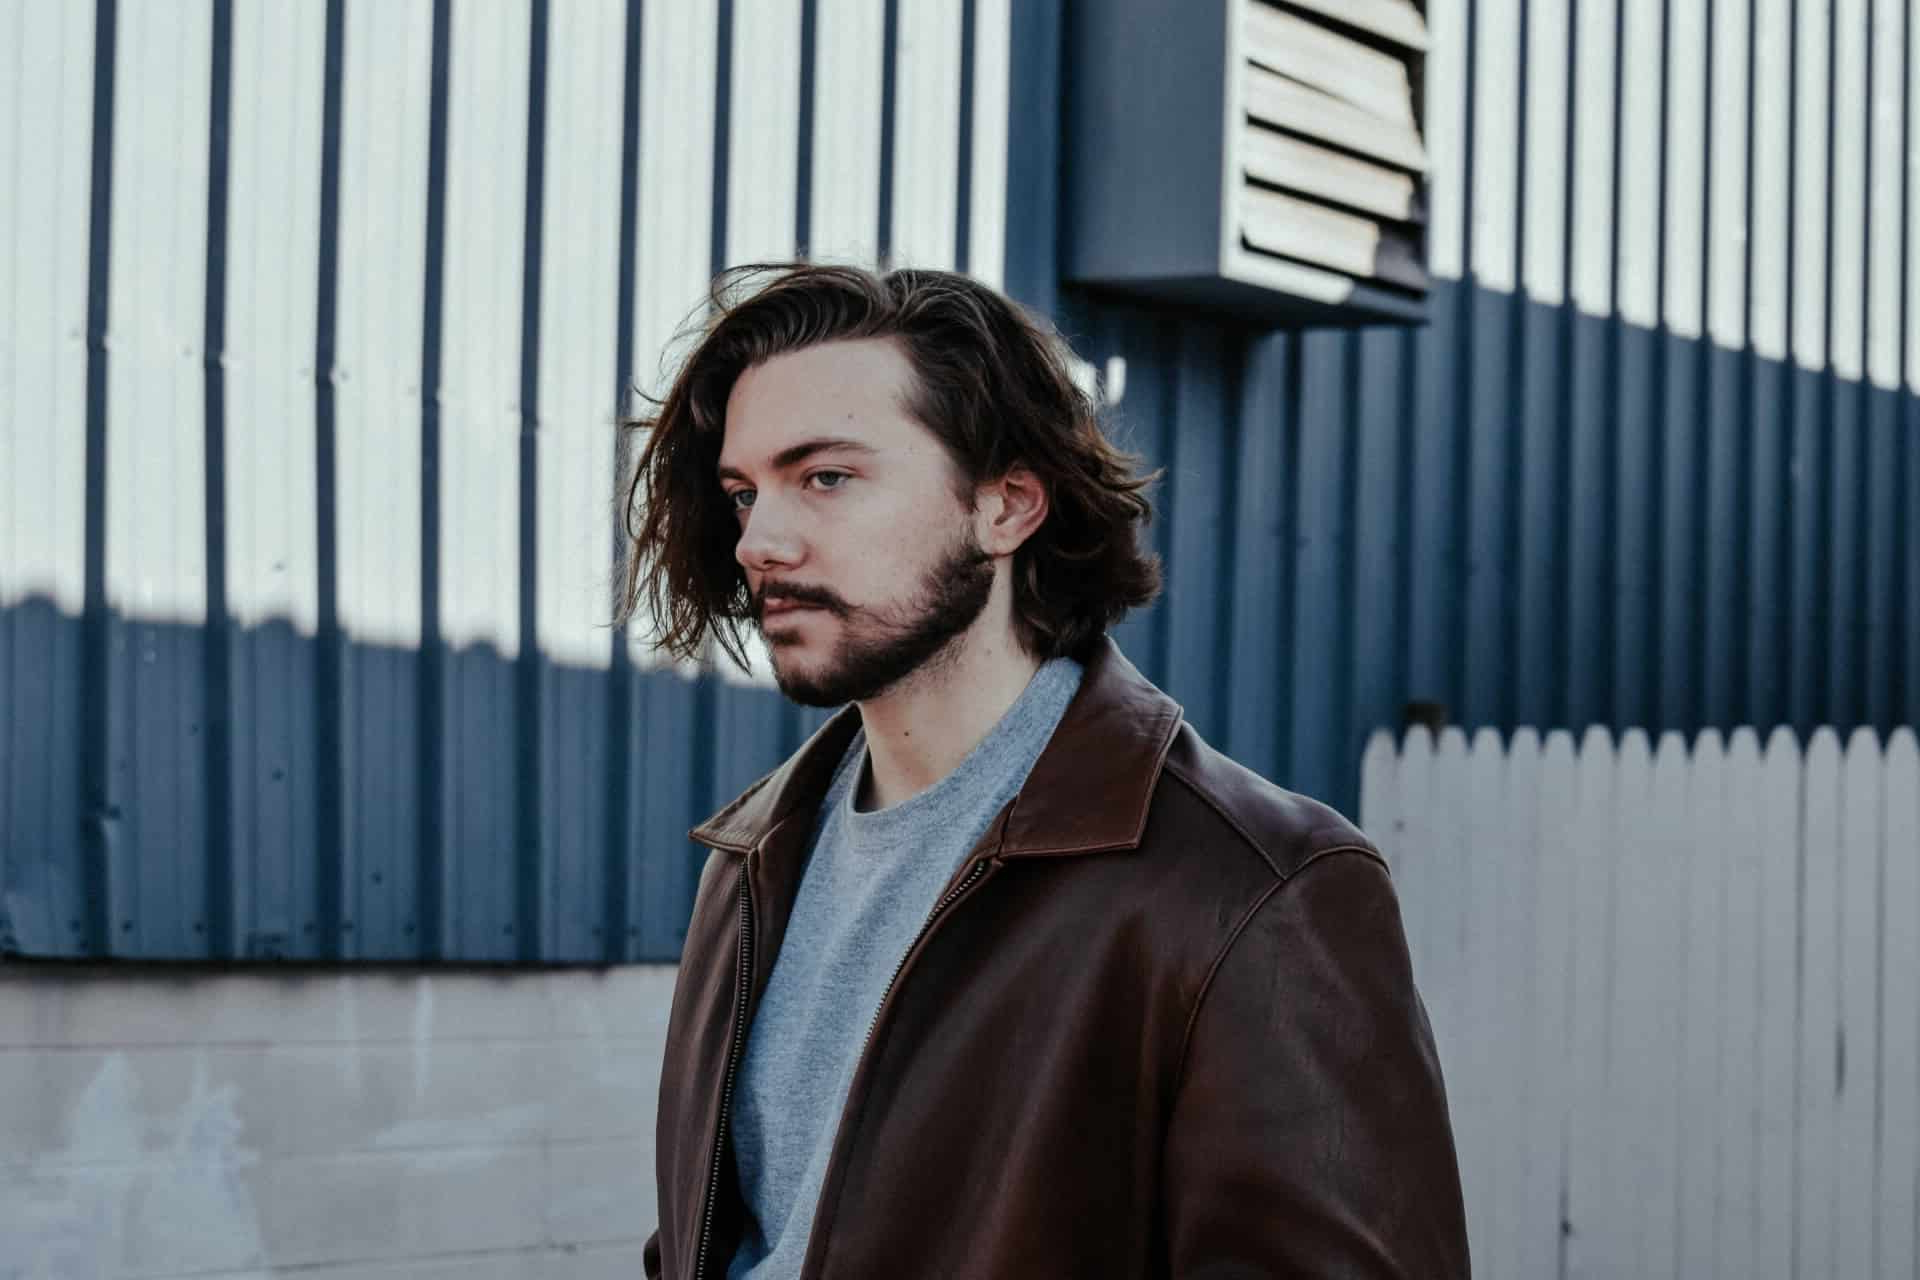 Widely Used Longer Haircuts With Thoroughly Layered Bottom Intended For 33 Long Hairstyles For Men – Cool Styles For Your Long Locks! (Gallery 20 of 20)